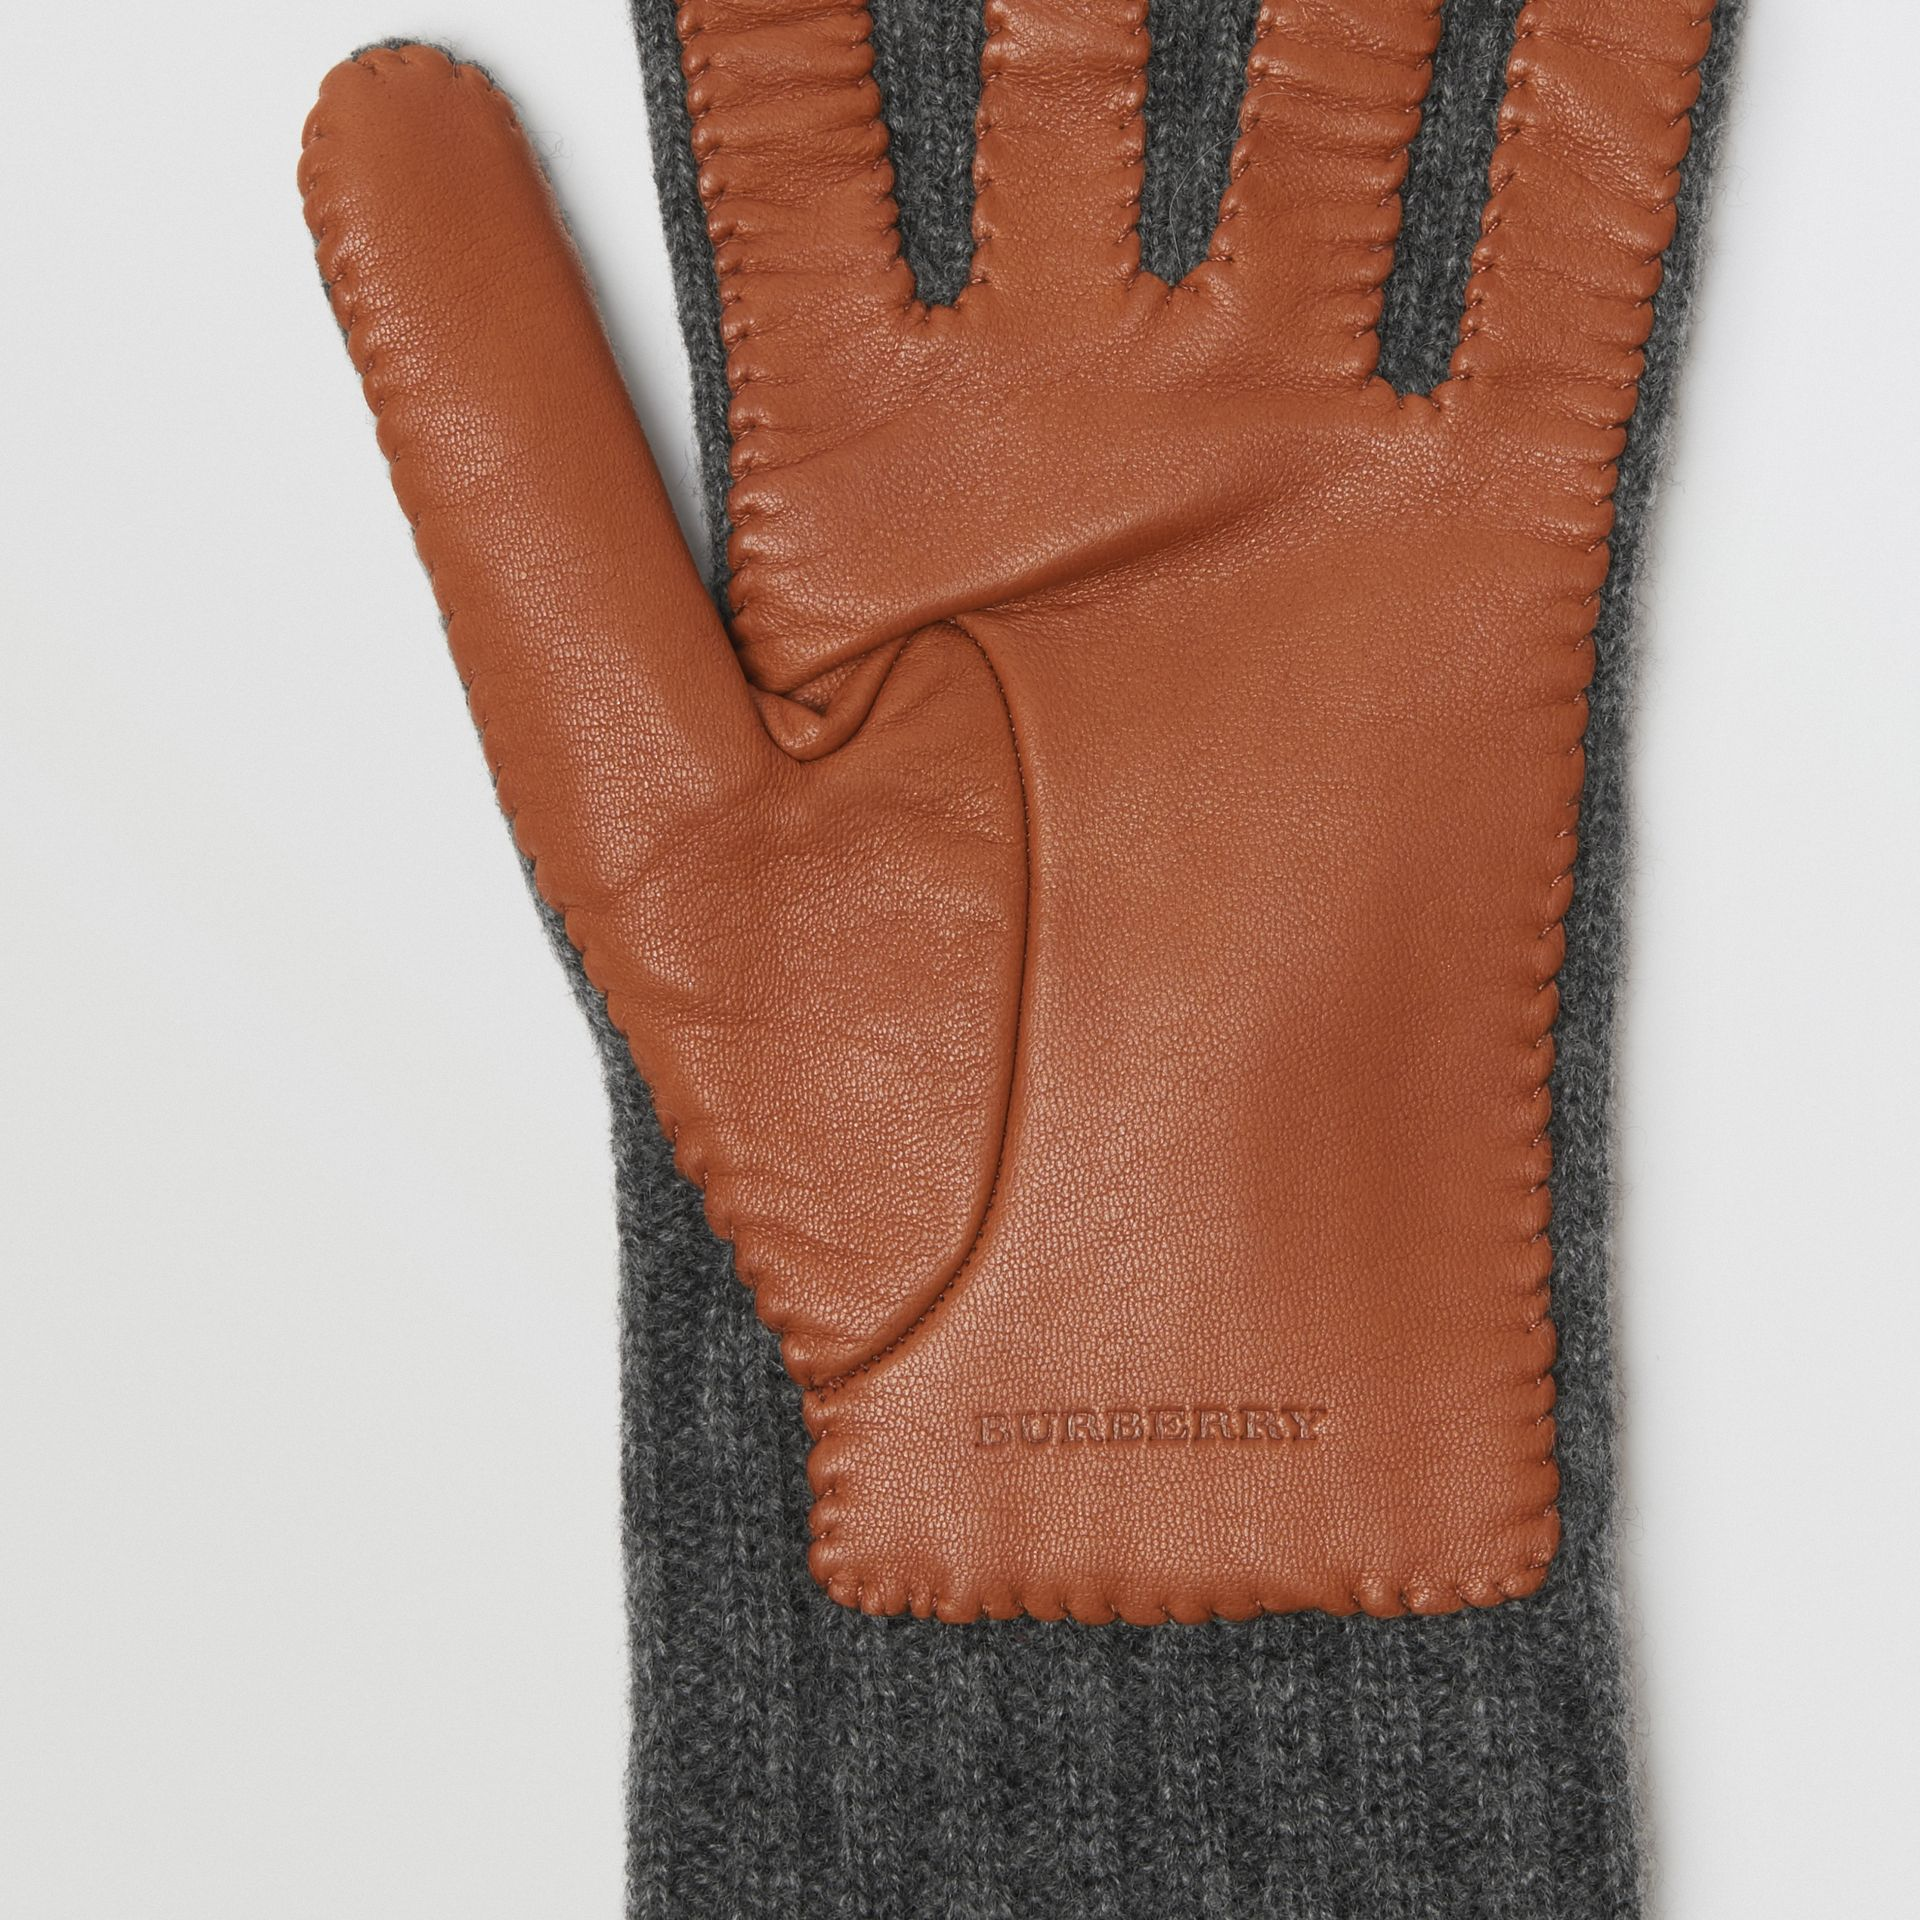 Cashmere and Lambskin Gloves in Tan/charcoal - Women | Burberry - gallery image 1